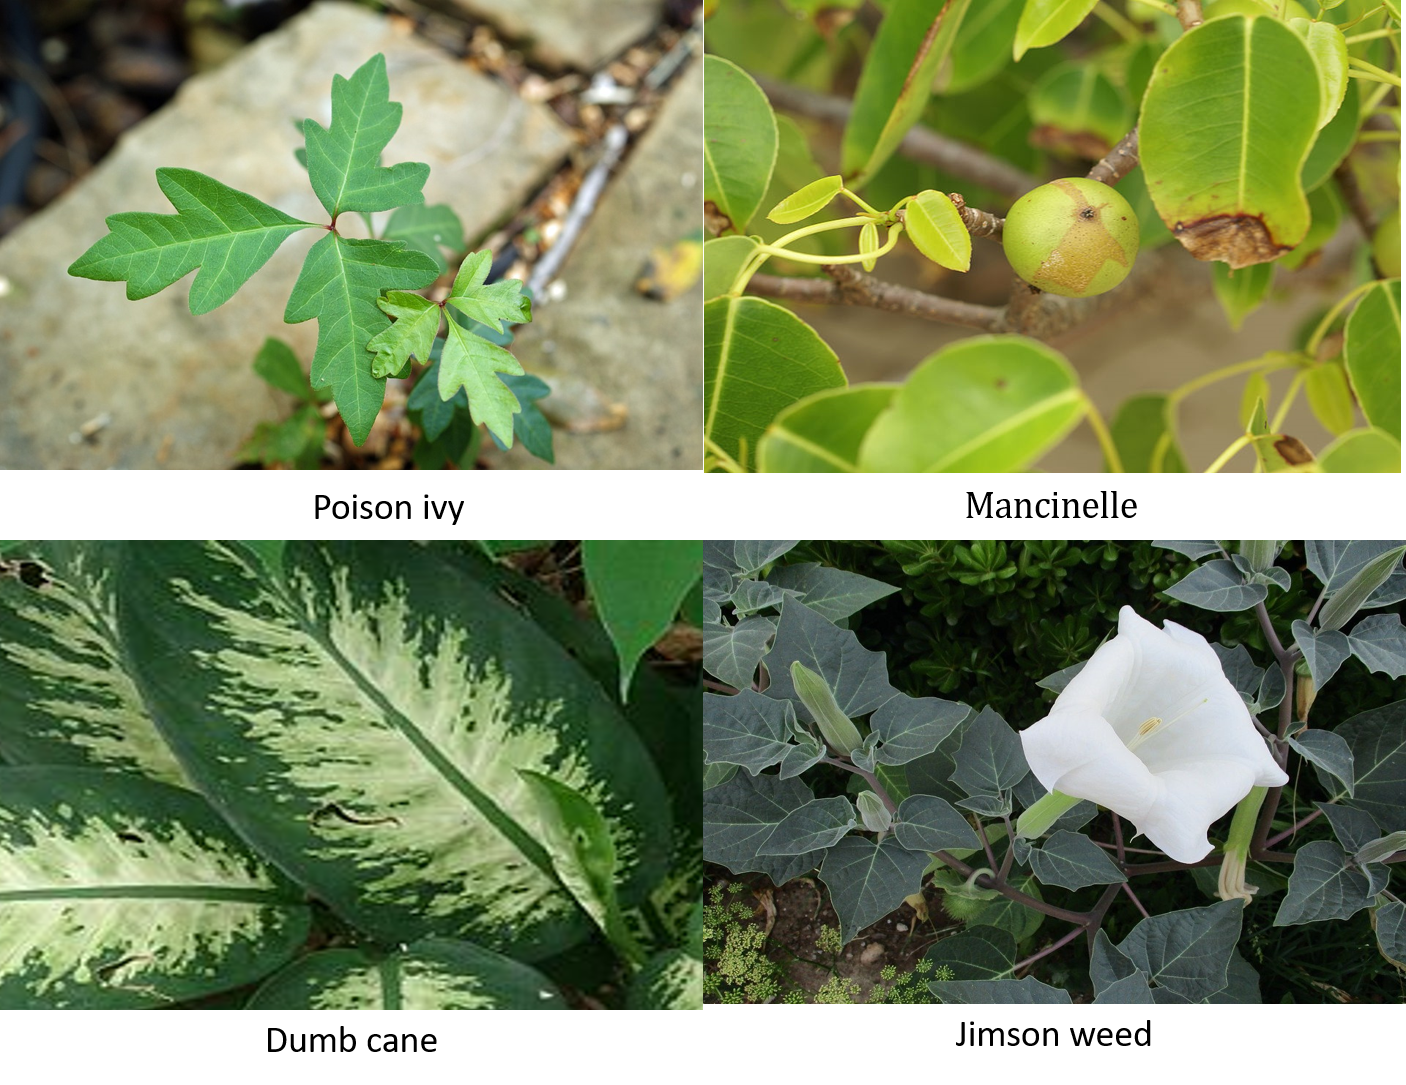 Image shows poisonous or inedible plants including poison ivy, Mancinelle, Dumb cane and Jimson weed